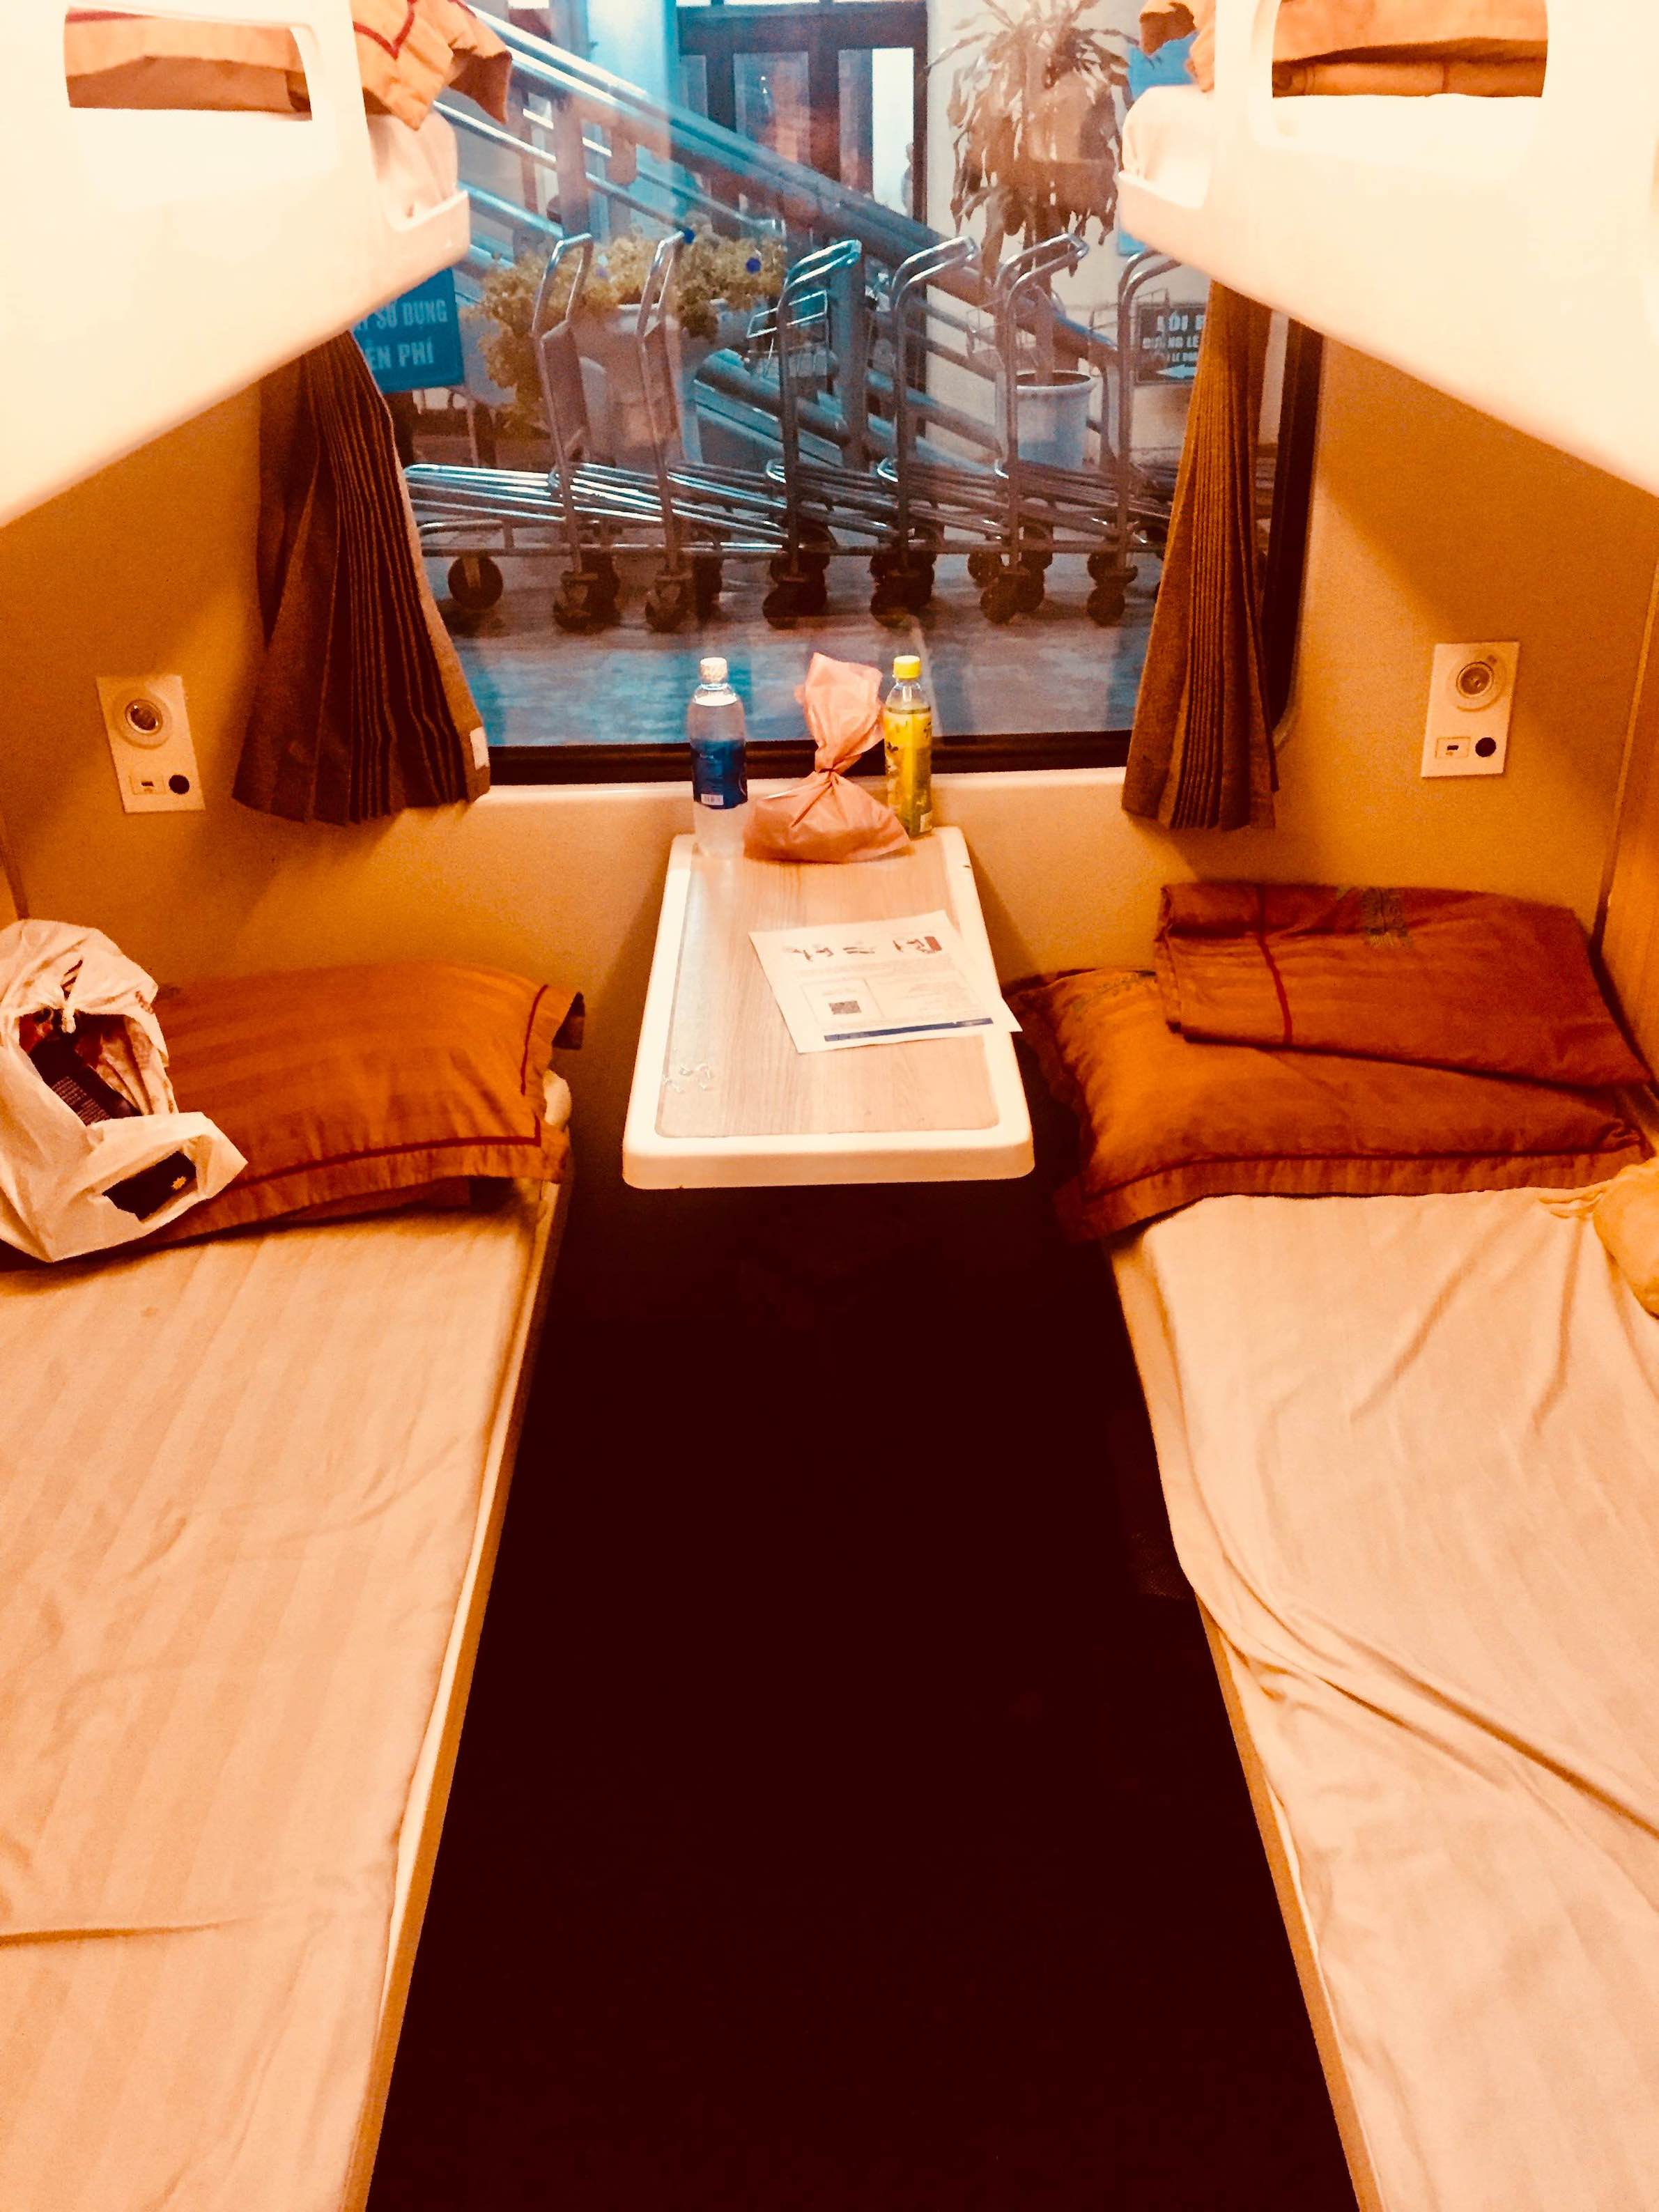 4 bed cabin Train from Hanoi to Dong Hoi.